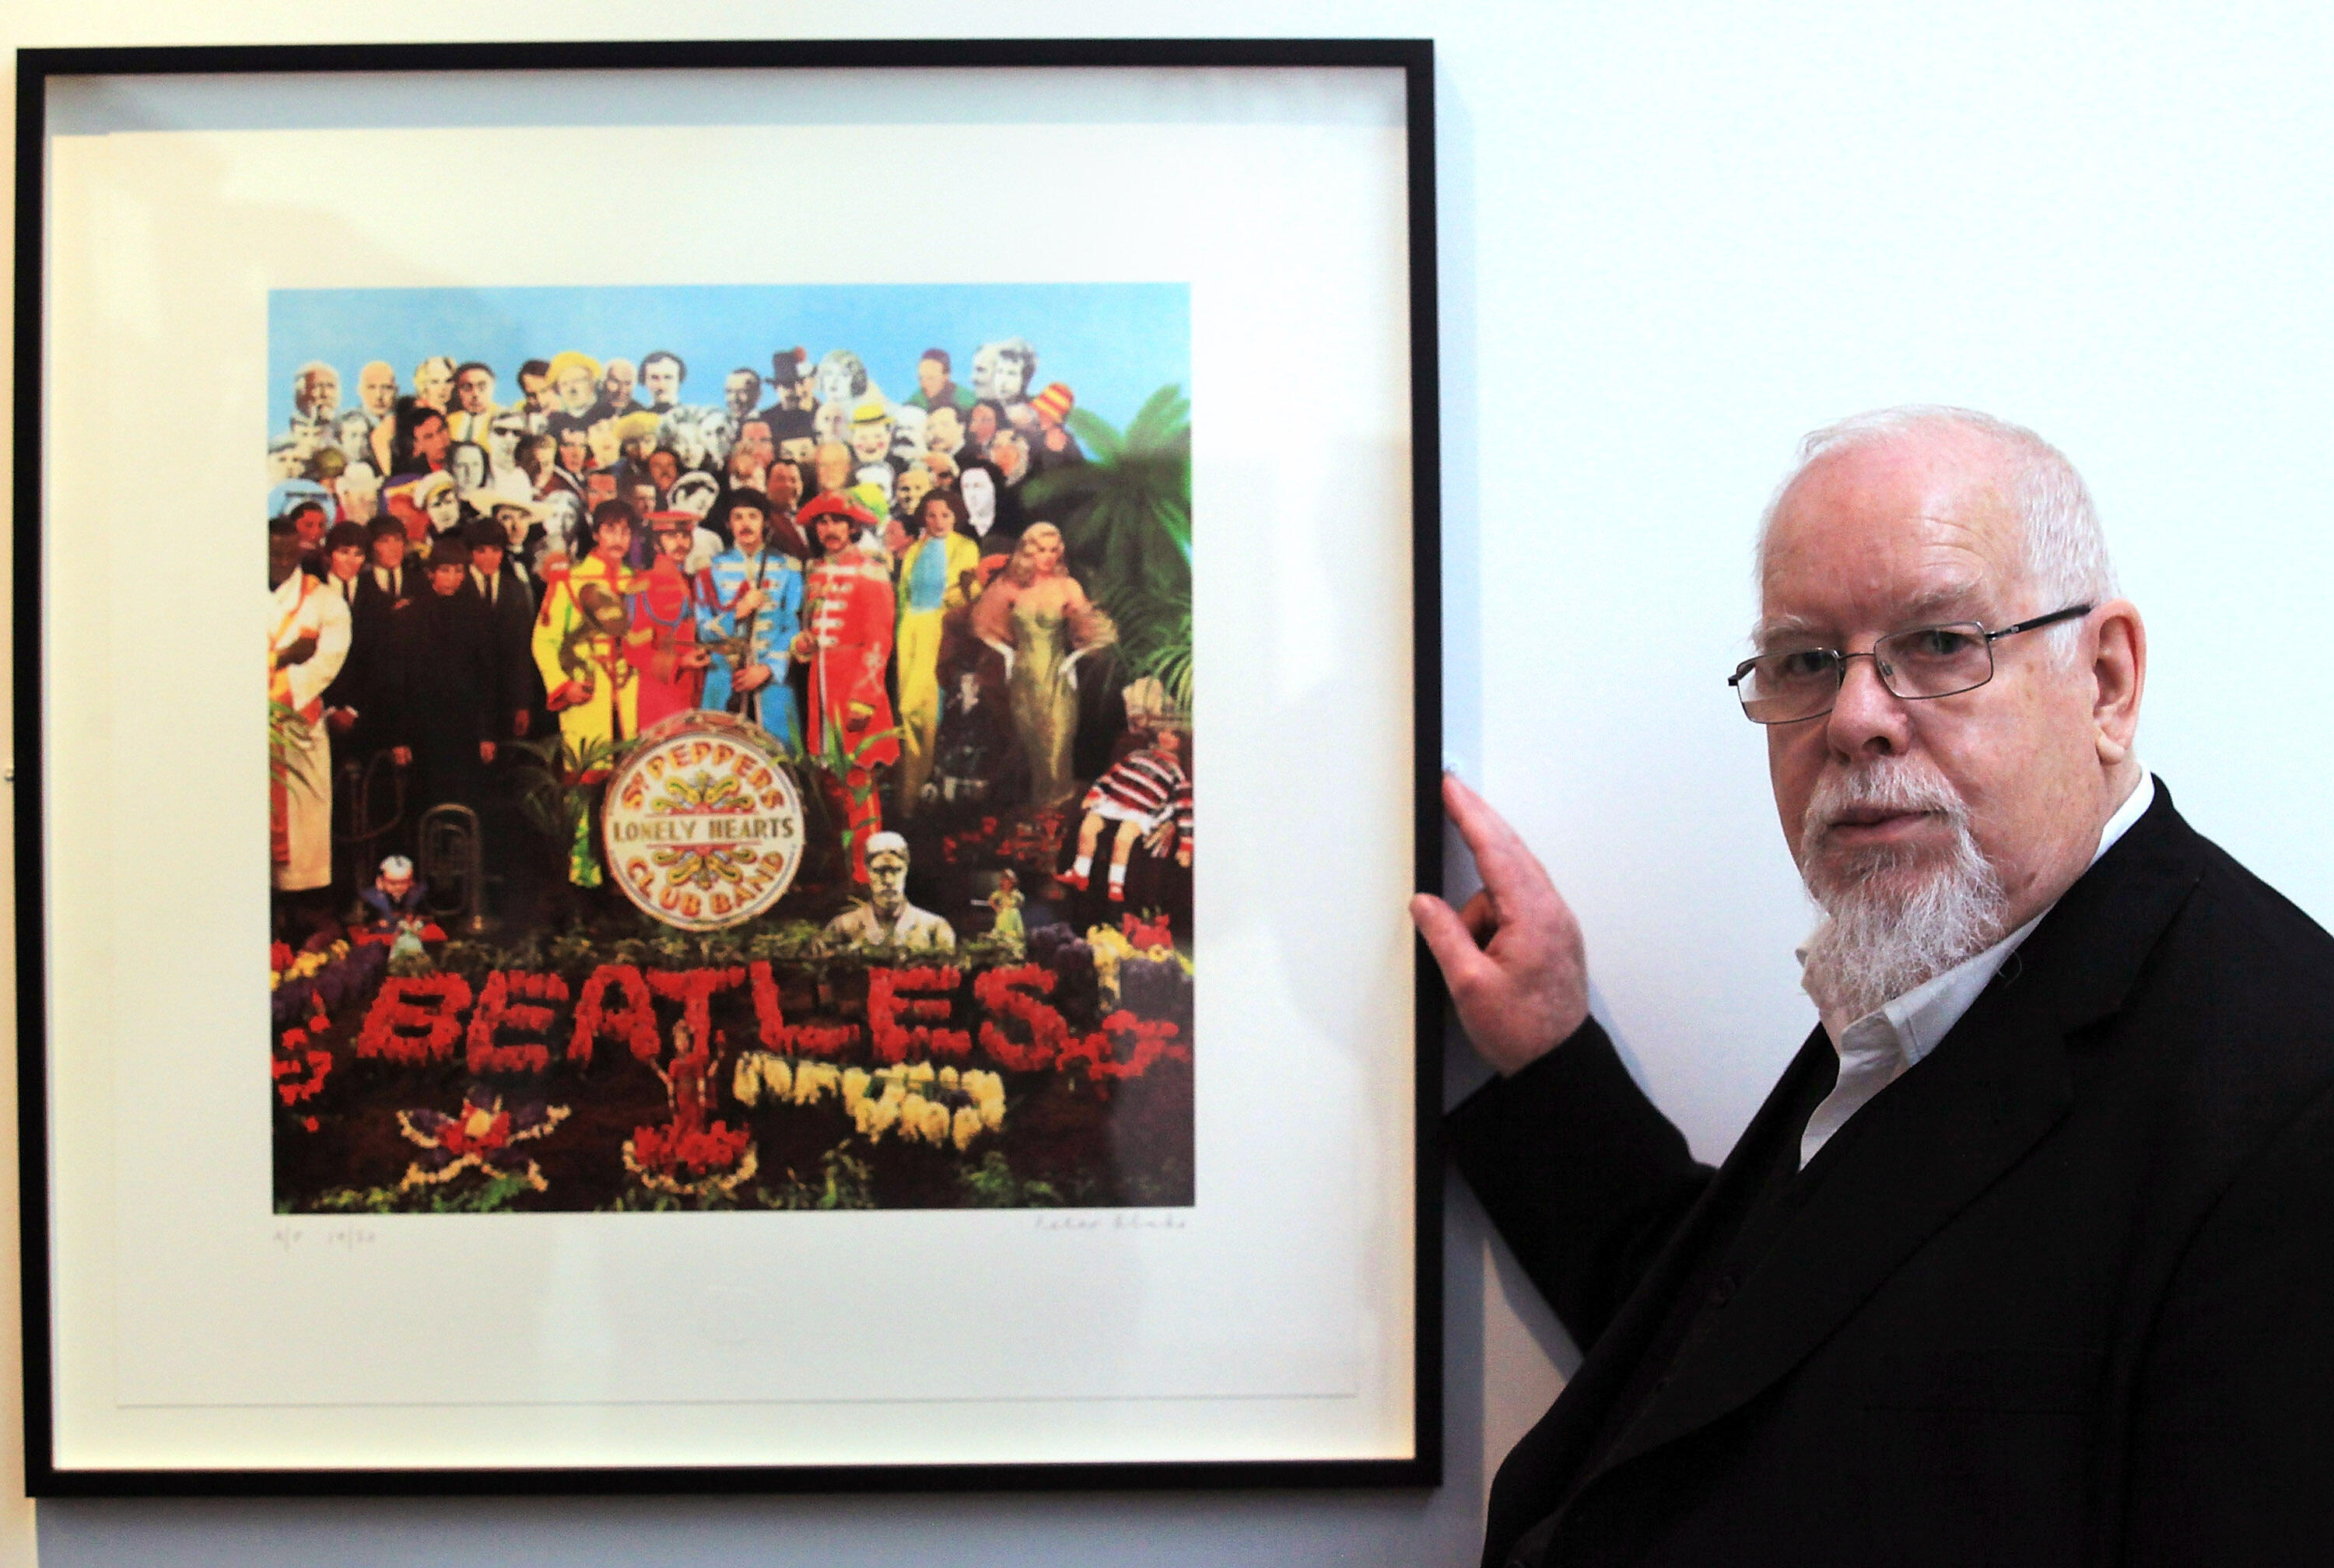 BATH, ENGLAND - MAY 12:  Artist Peter Blake poses for a photograph besides a copy of The Beatles Sgt Pepper LP album cover that he designed in 1967 as he reopens the Holburne Museum on May 12, 2011 in Bath, England. The new museum's first exhibition  - wh